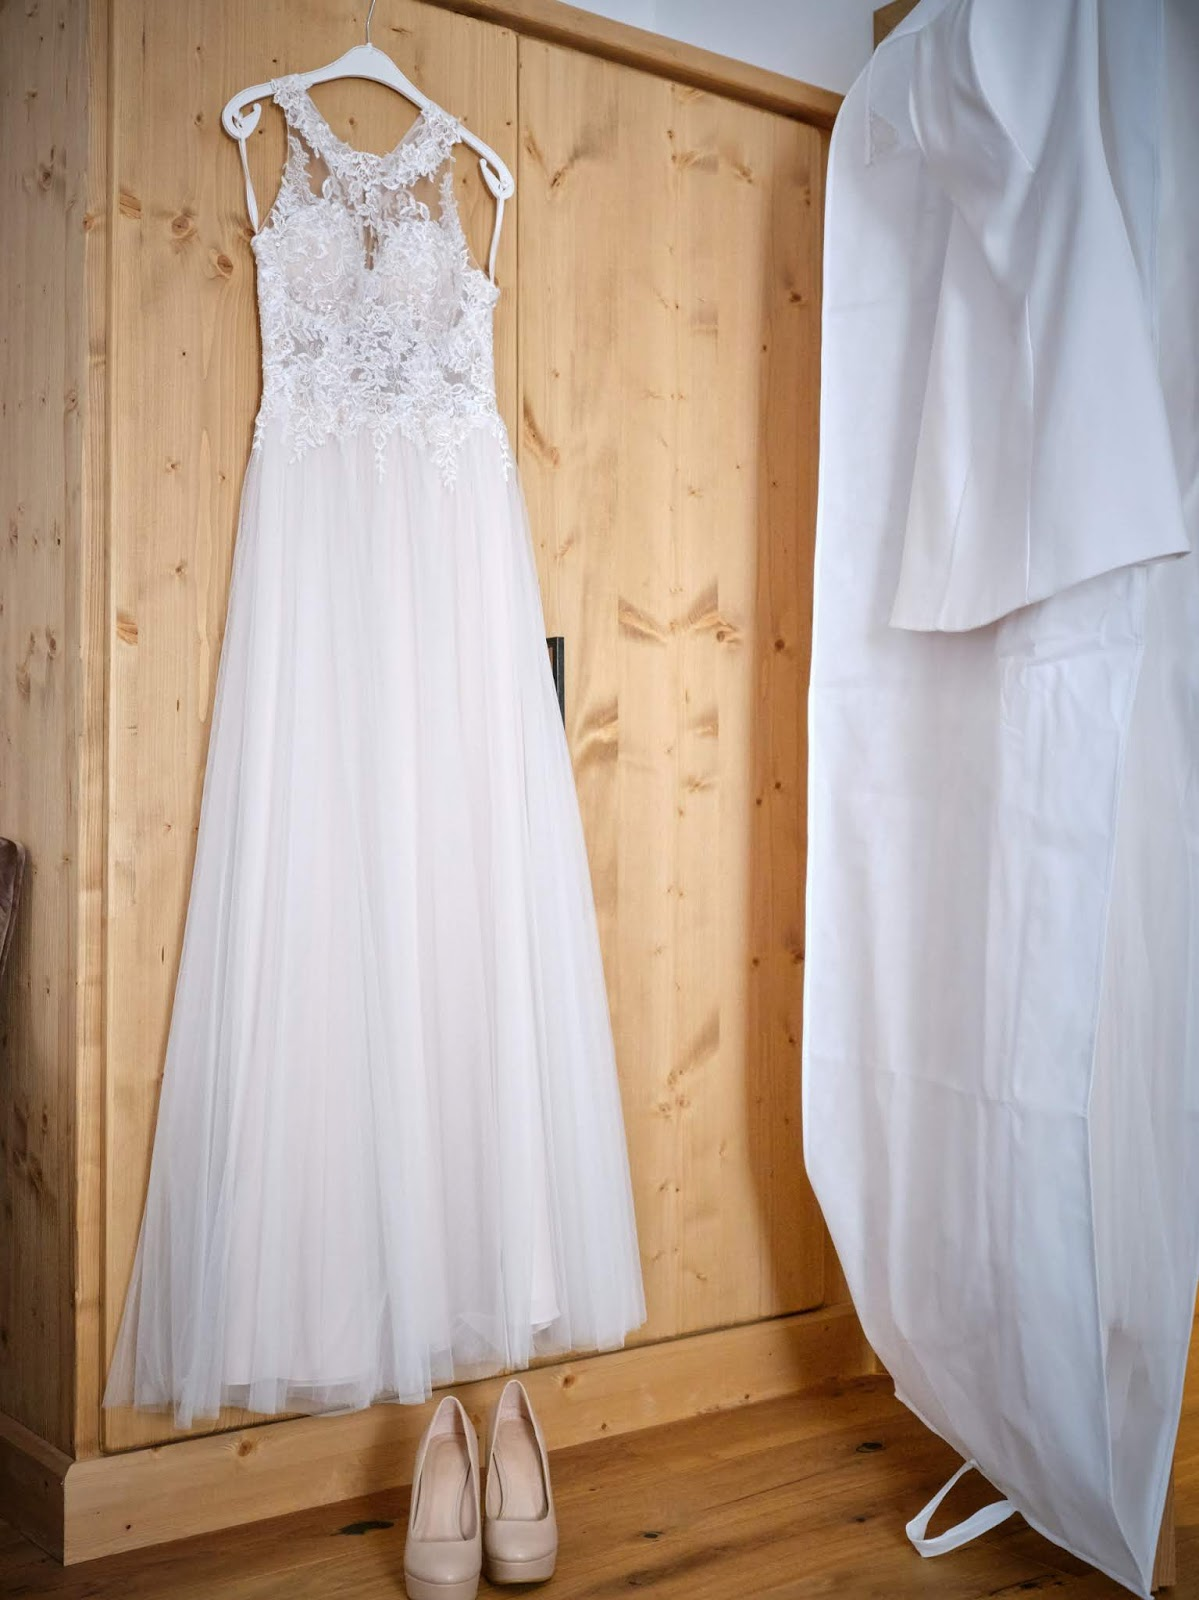 Getting ready, Brautkleid die Hochzeitskleiderin Murnau, Berghochzeit in Tirol, Mountain wedding, Pure Resort Pitztal, Fotograf Marc Gilsdorf Alpenwedding, Hochzeitsplaneragentur 4 weddings & events, Uschi Glas, Styled Shooting, Destination Wedding Austria